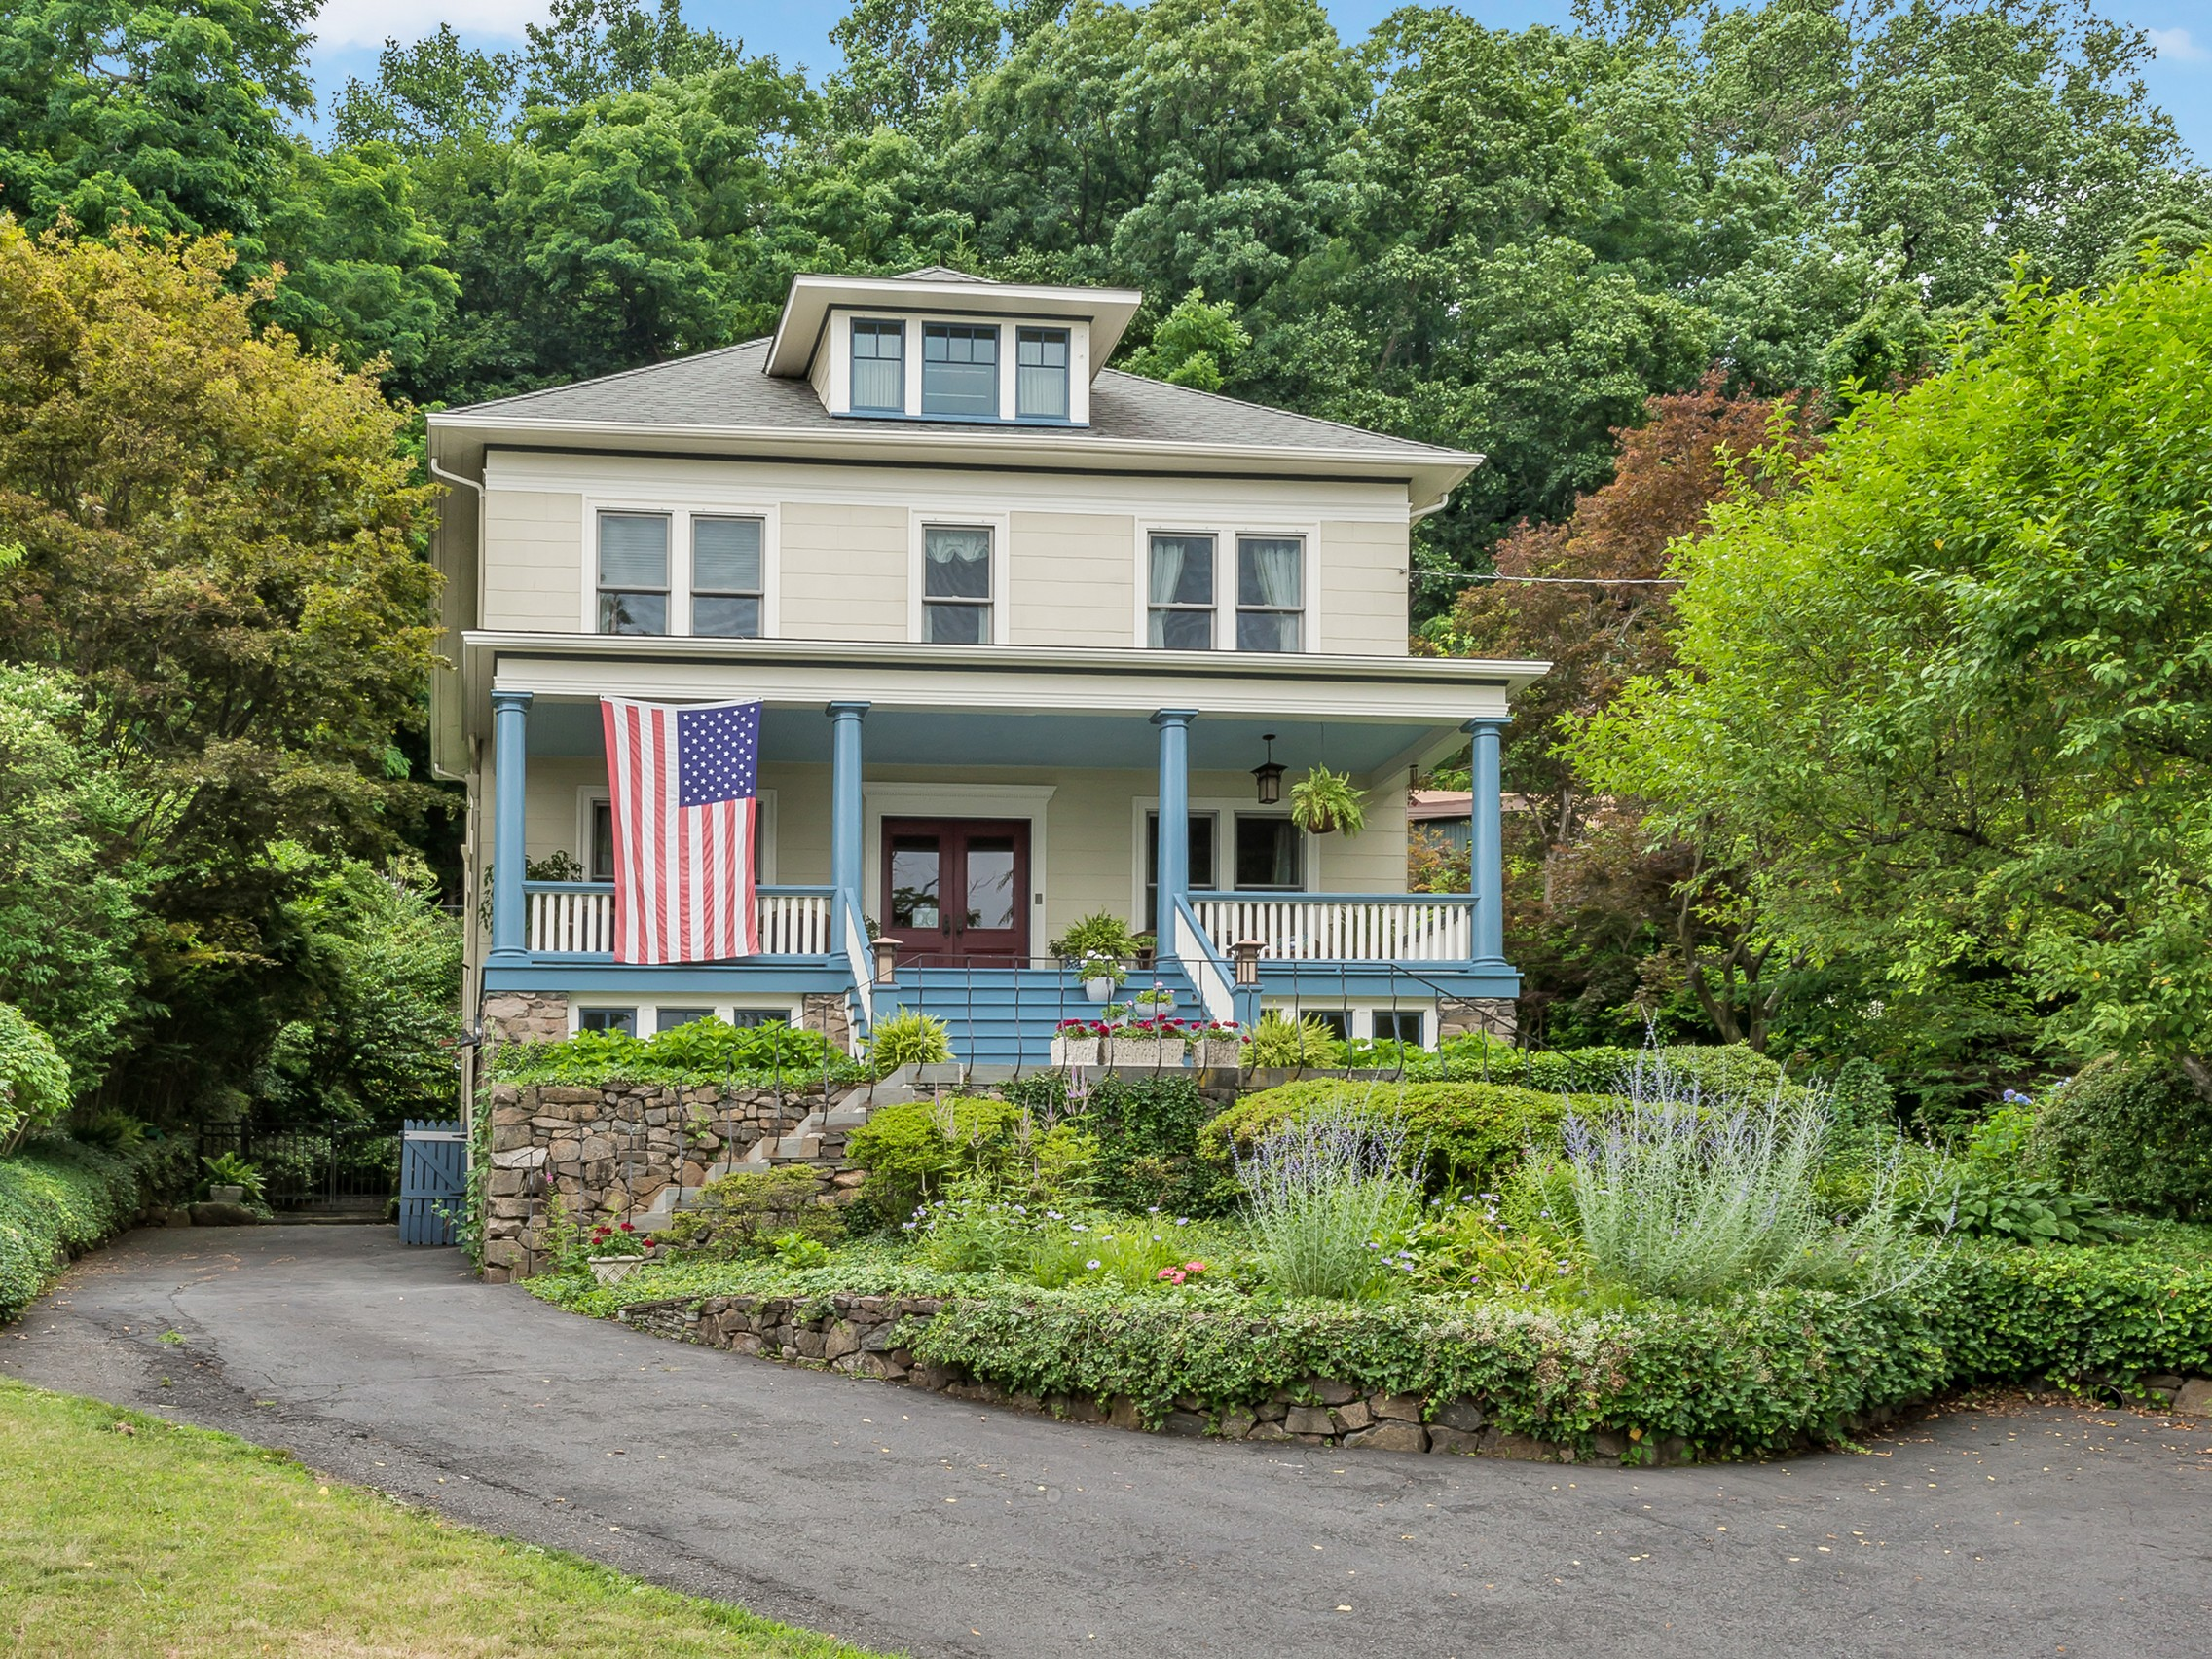 Single Family Home for Sale at Botanical Oasis by the River 285 River Road Grandview, New York, 10960 United States